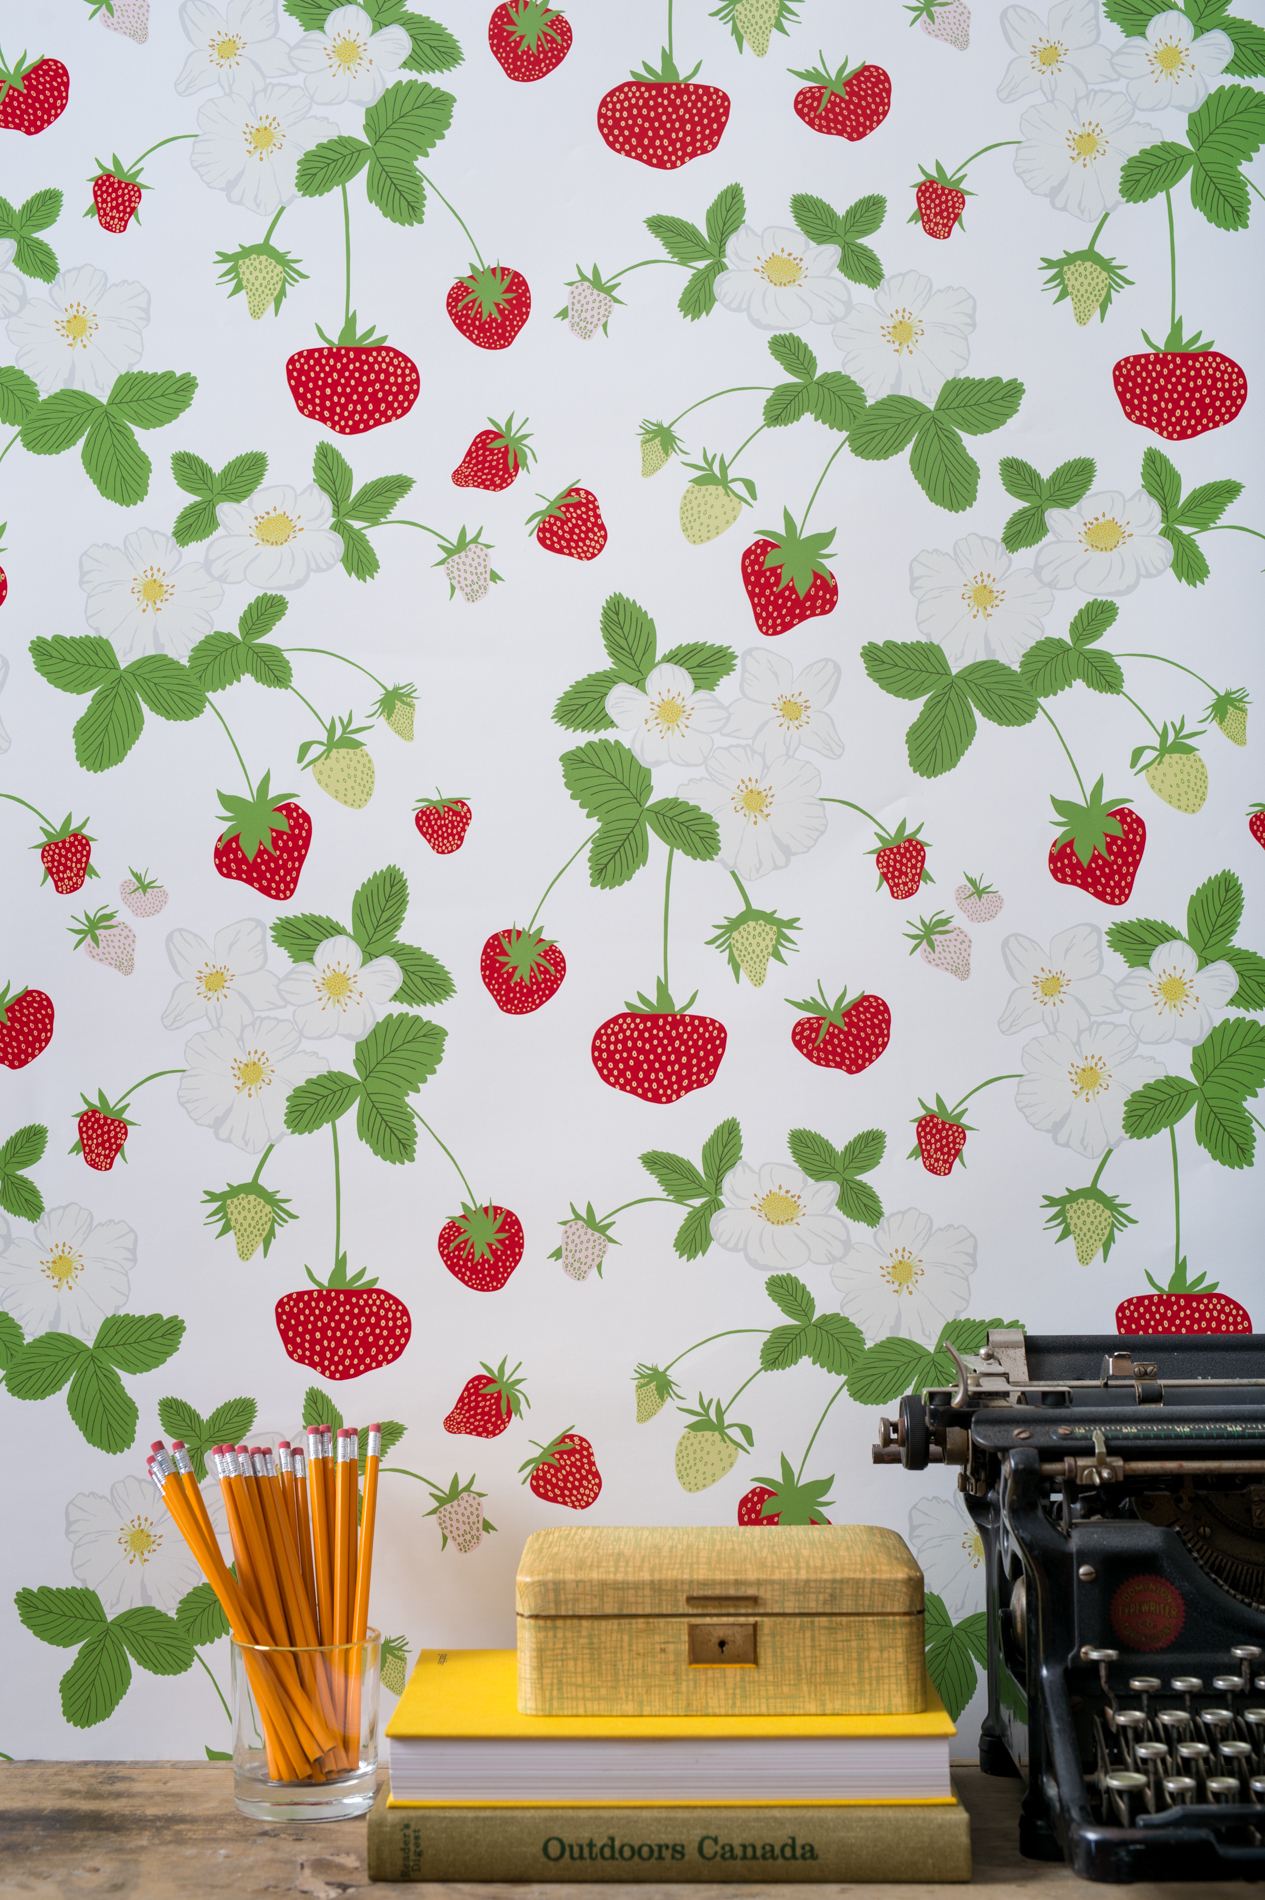 Kate Golding Strawberry Social wallpaper // Modern wallcoverings and interior decor.